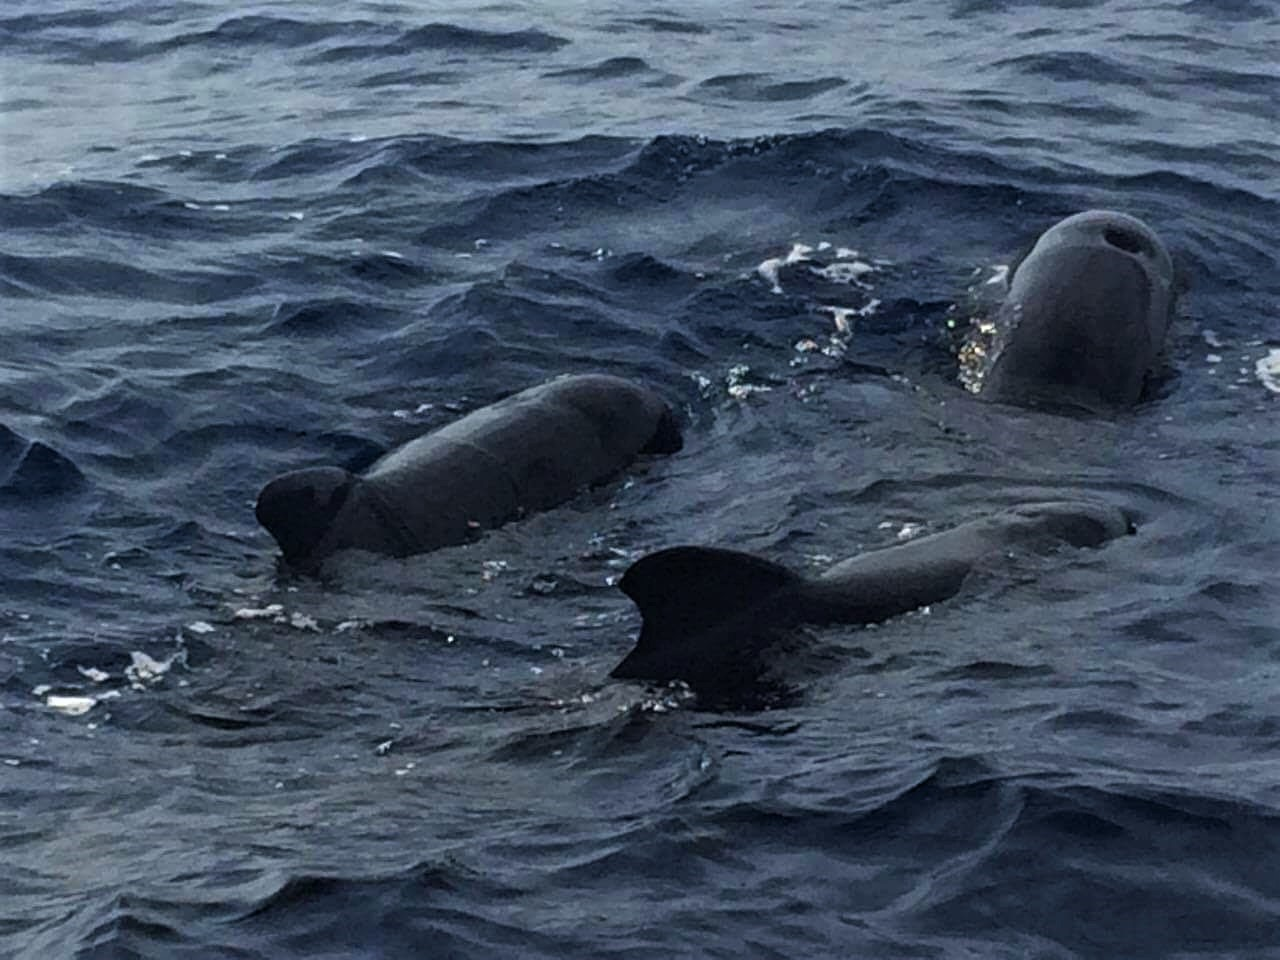 What a delightful sight, three pilot whales bask alongside the boat